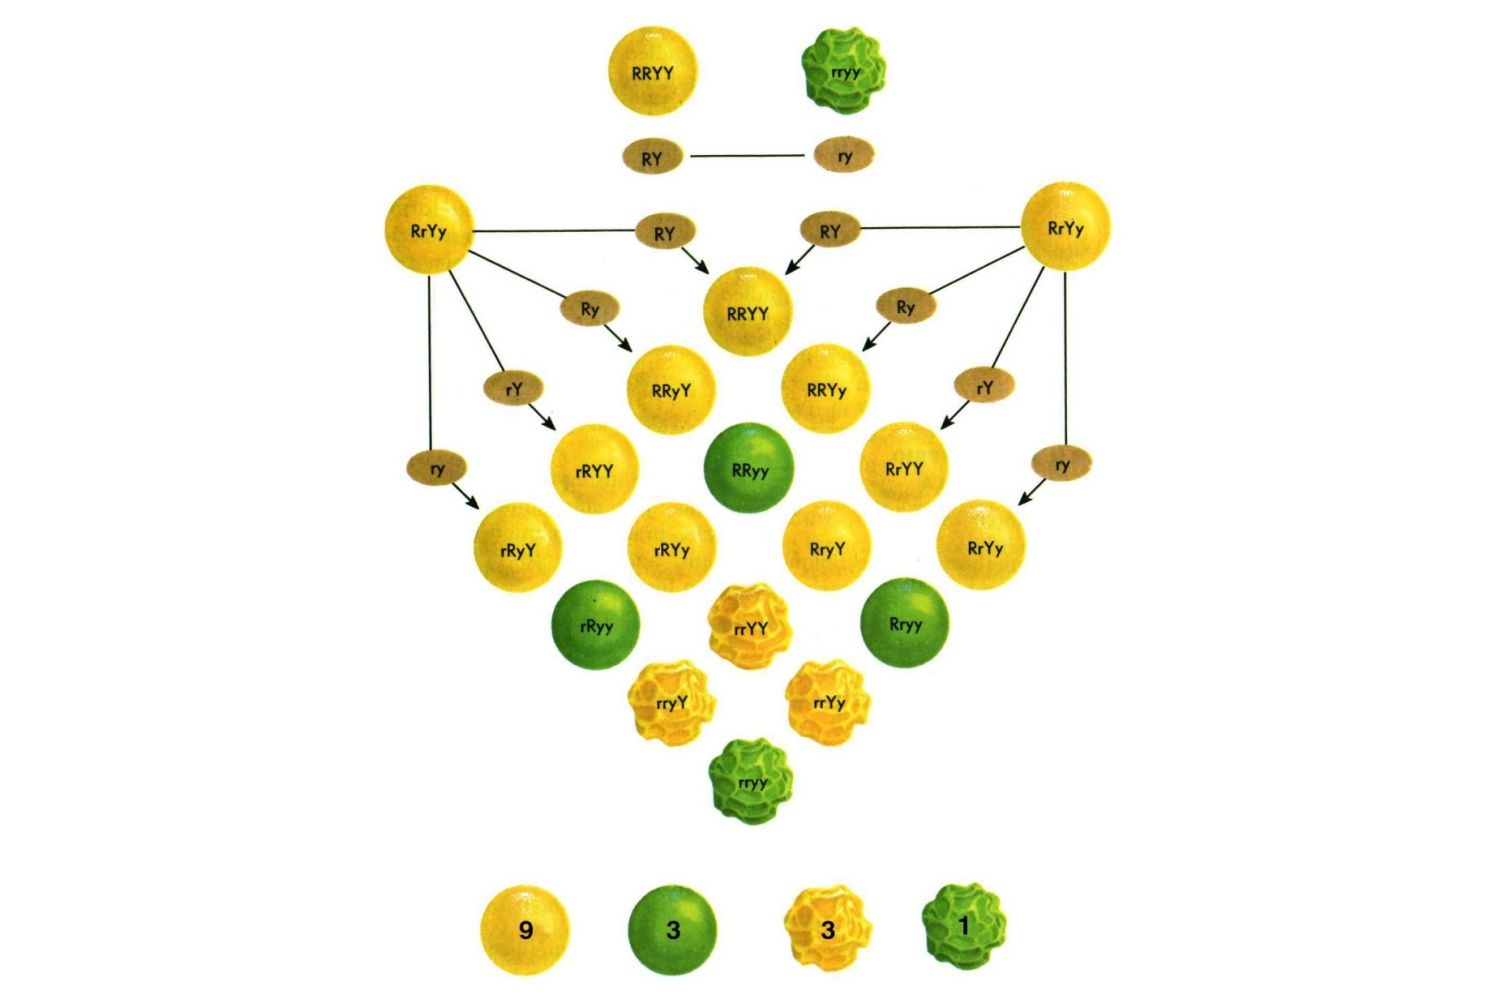 This image shows results of the self-fertilization of F1 plants resulting from the dihybrid cross of a true-breeding plant with round, yellow seeds and a true-breeding plant with wrinkled, green seeds.